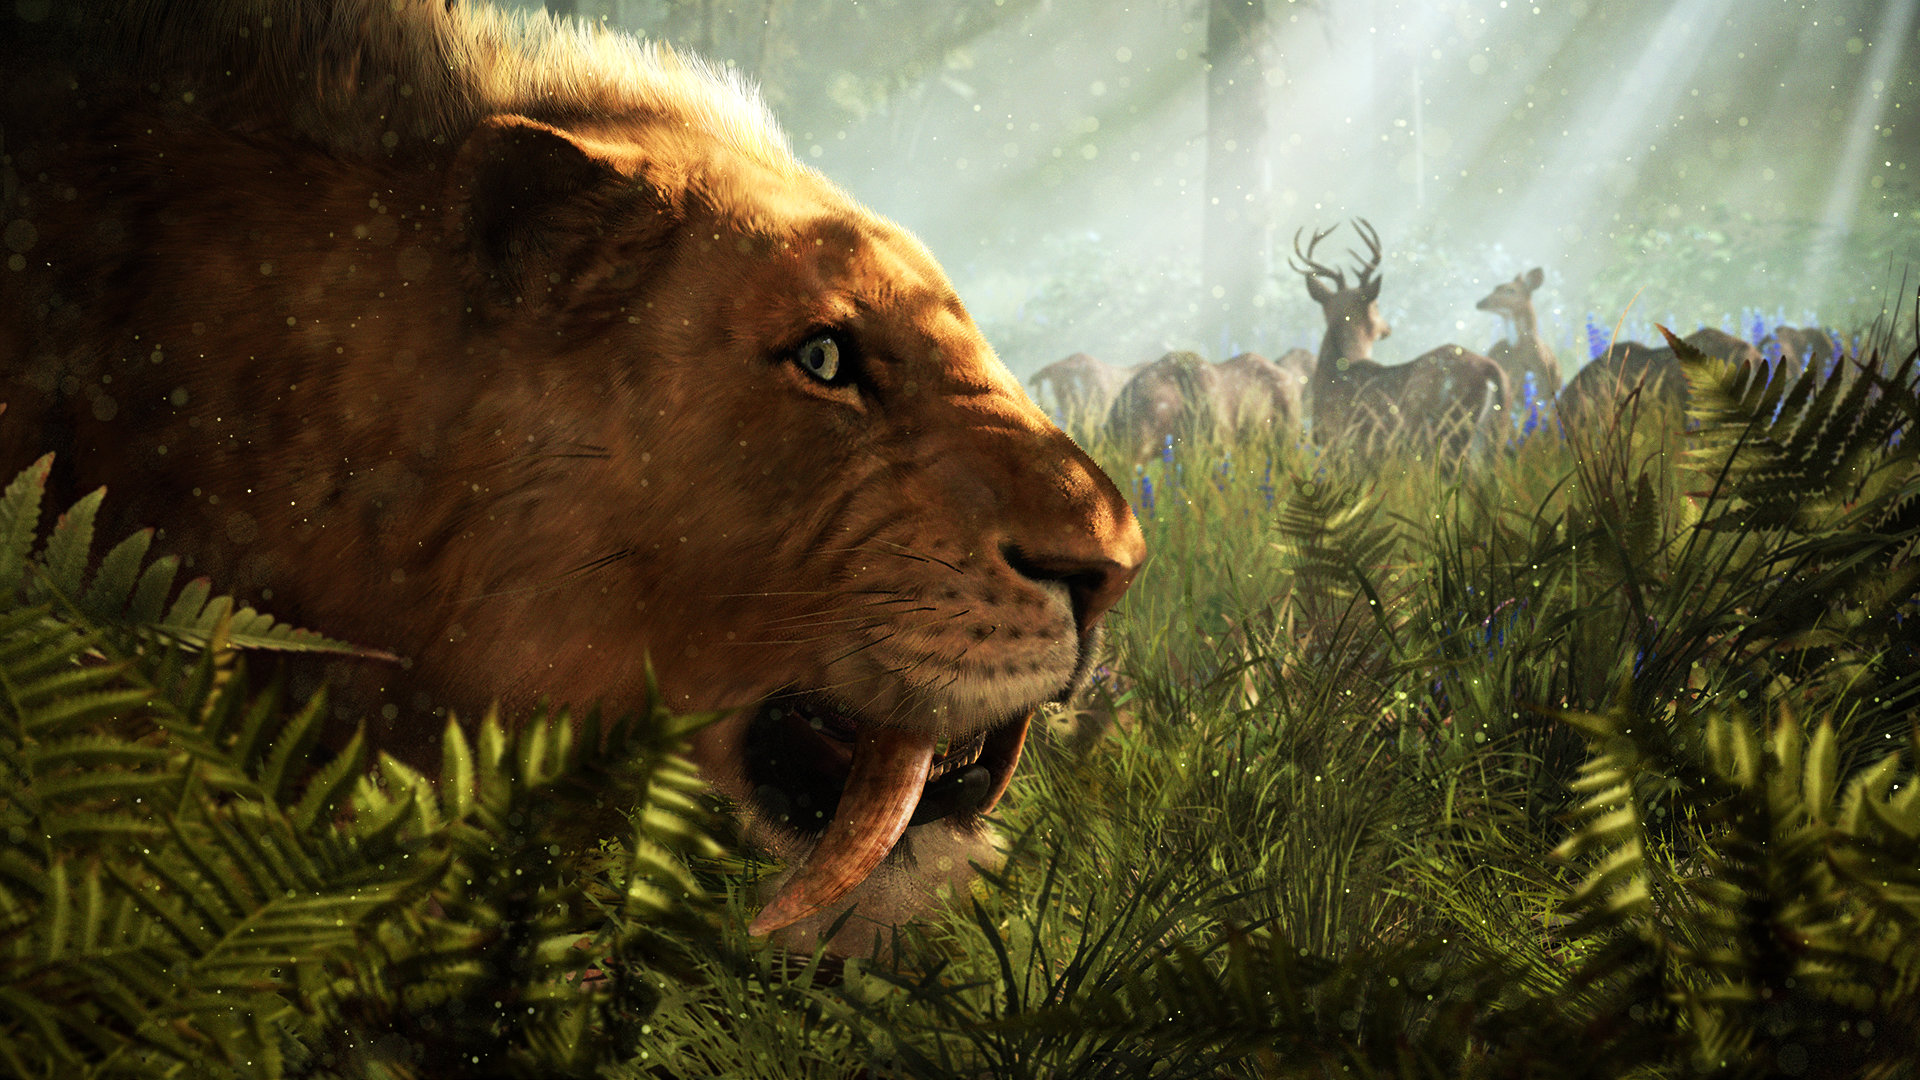 Far Cry Primal Wallpapers 1920x1080 Full Hd 1080p Desktop